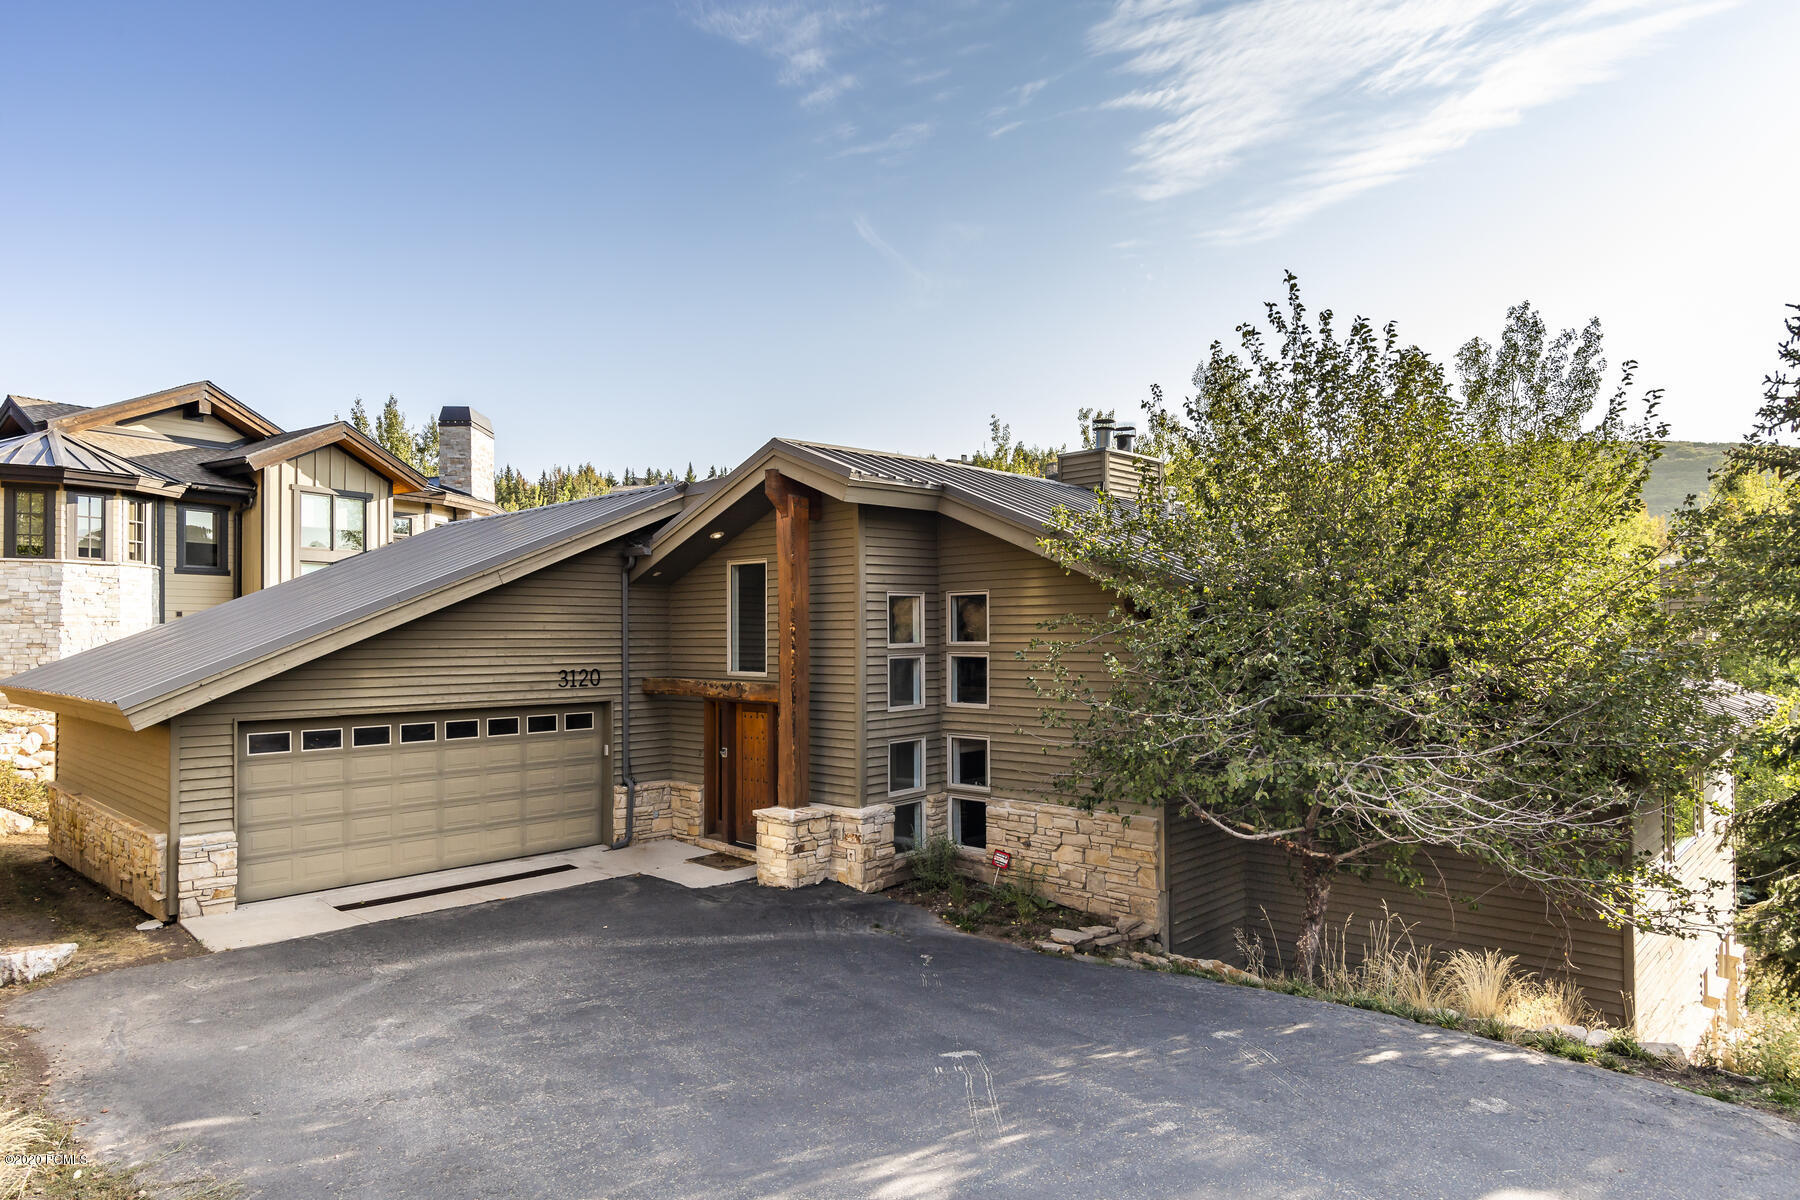 3120 Solamere Drive, Park City, Utah 84060, 4 Bedrooms Bedrooms, ,6 BathroomsBathrooms,Single Family,For Sale,Solamere,12003468